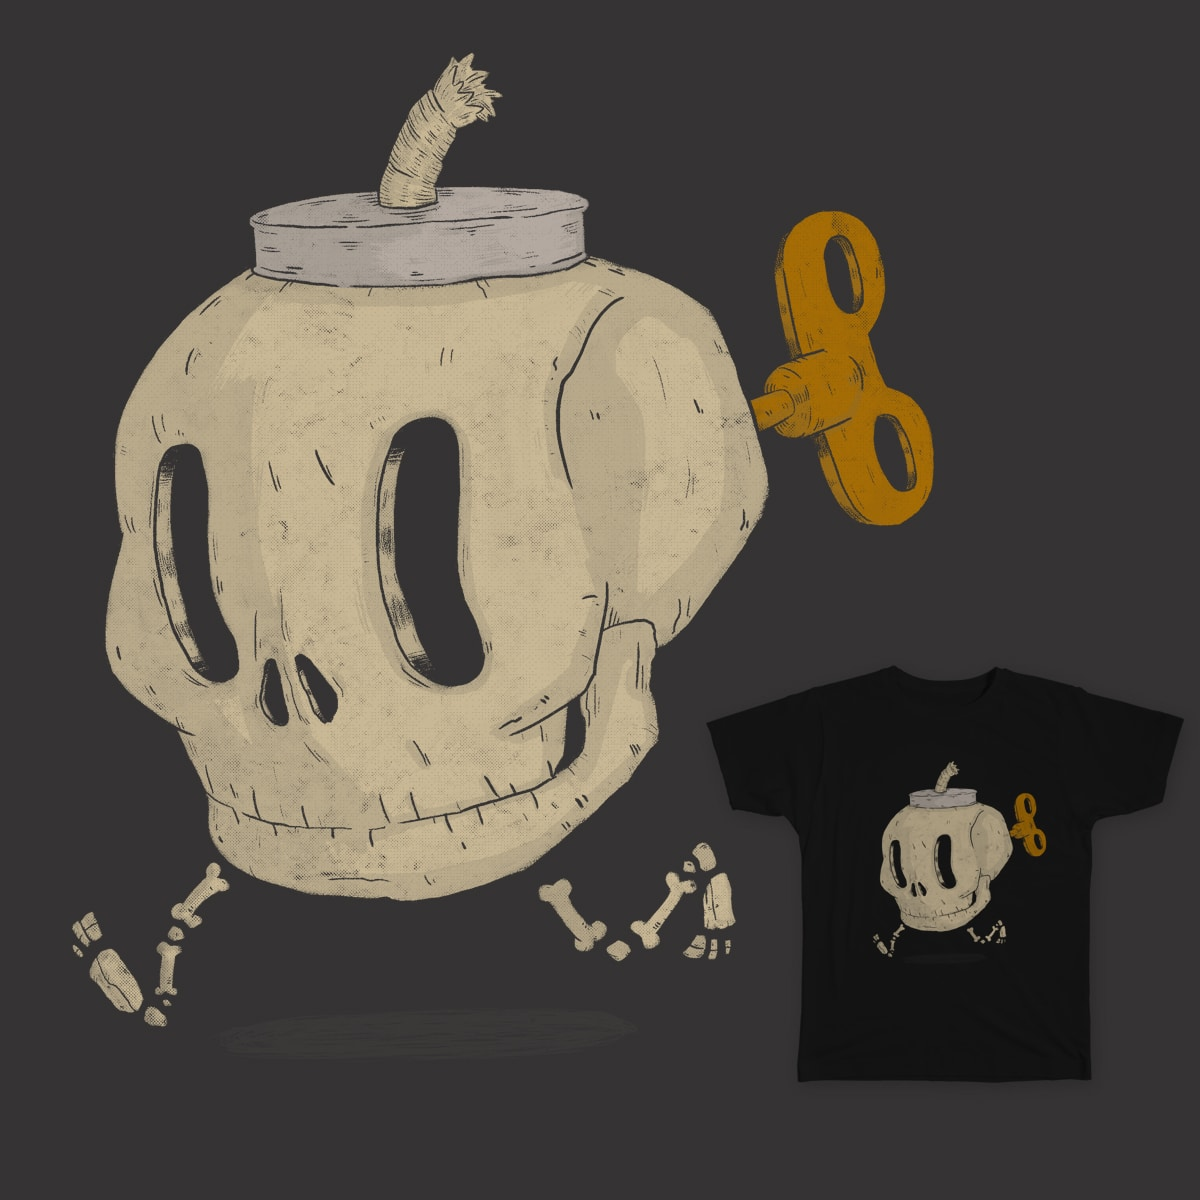 Skull Bomb by lxromero on Threadless